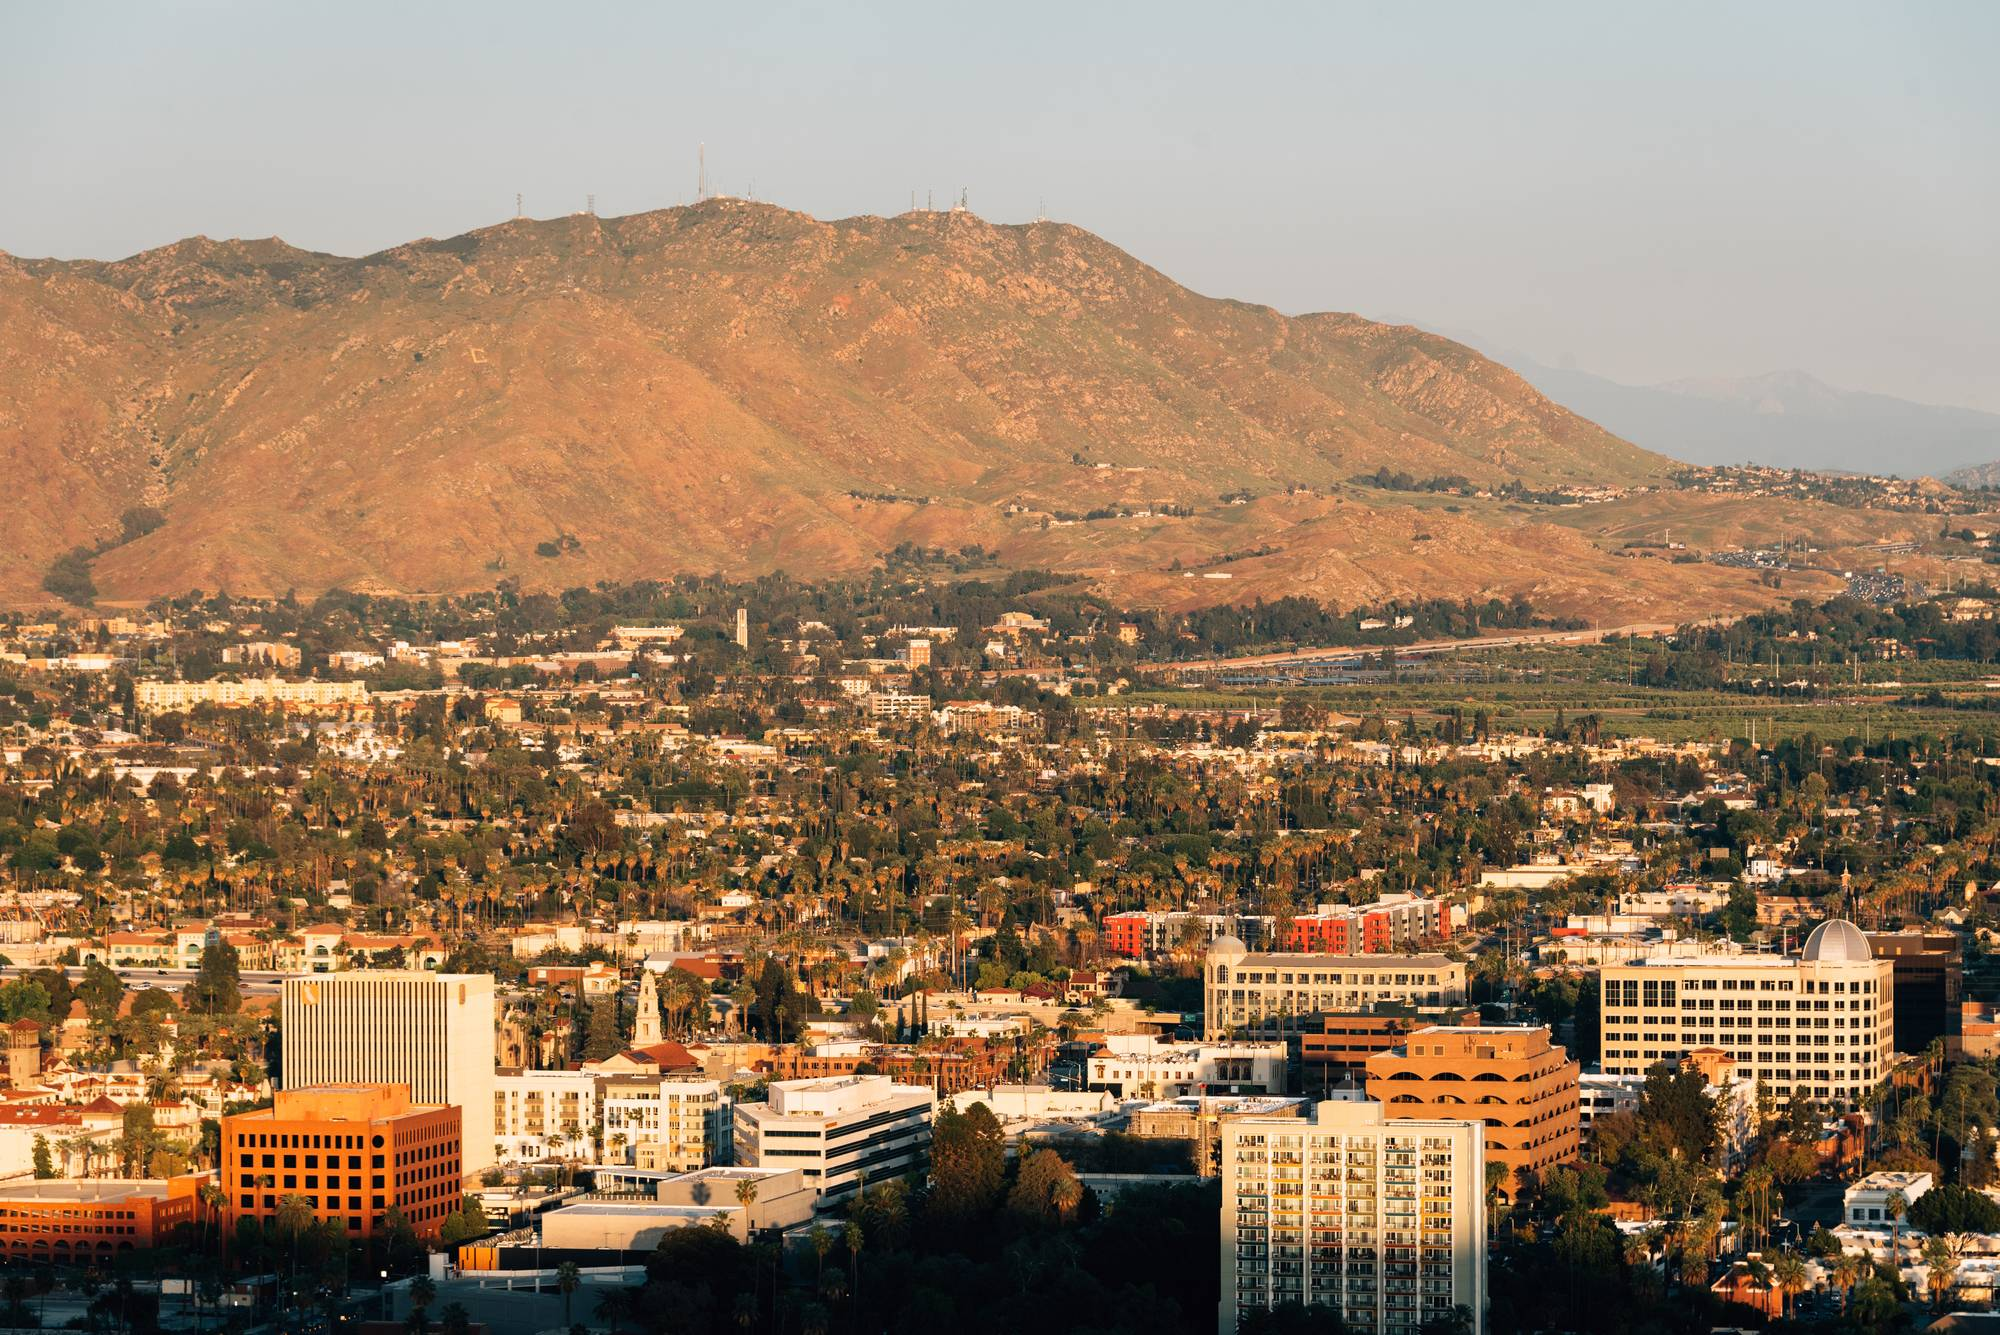 Engineering, Tech and I.T. Jobs Thrive In The Inland Empire